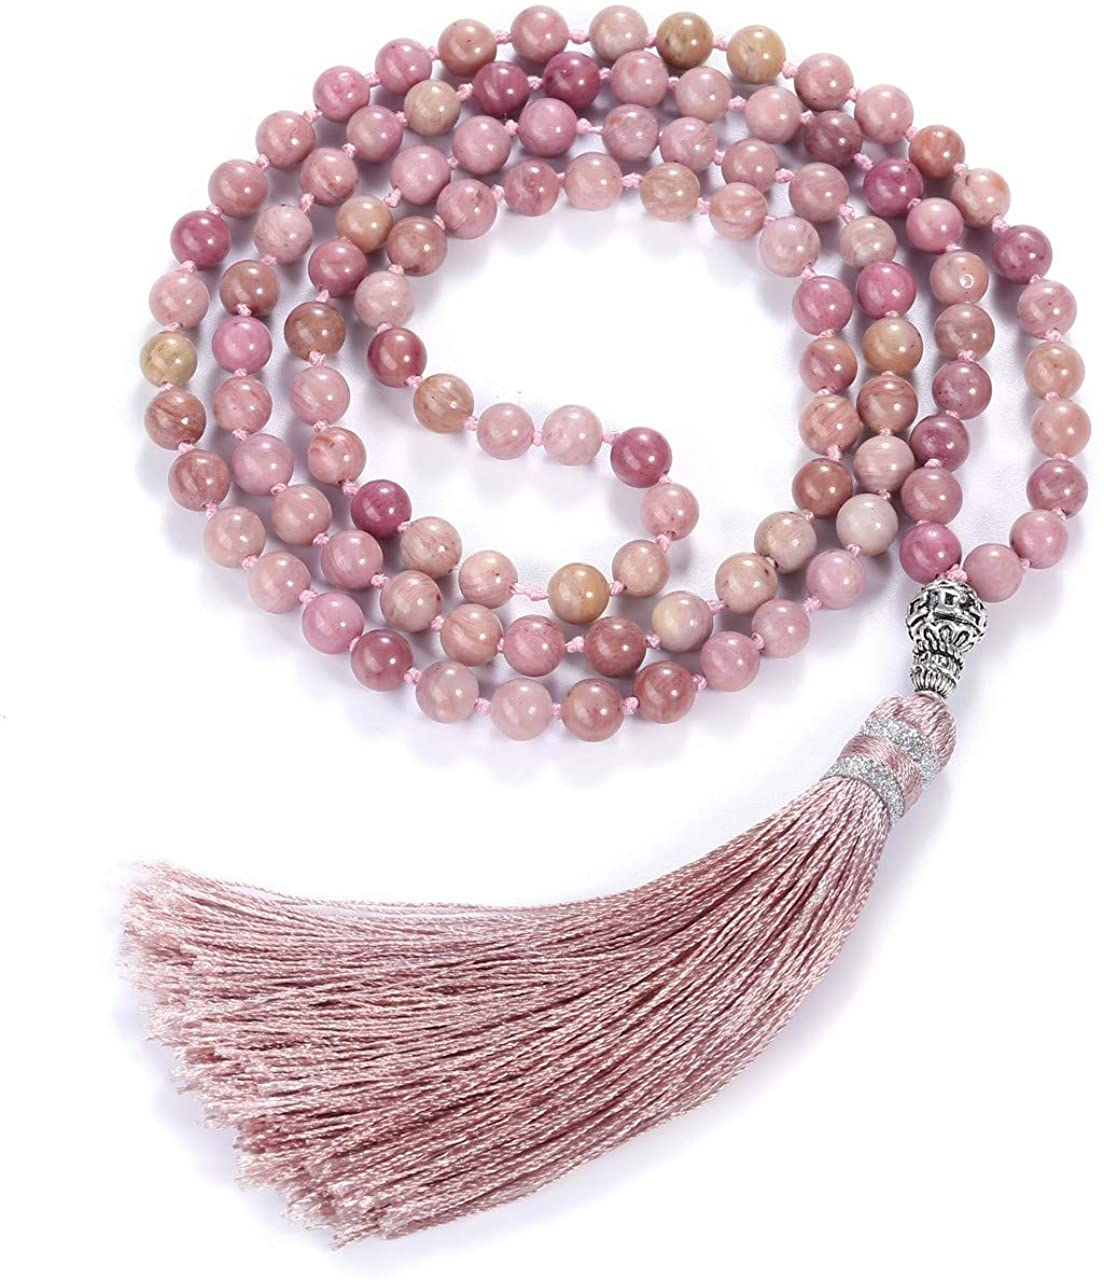 Top Plaza Womens 108 Mala Prayer Beads Wrap Necklace with Long Tassel Healing Crystal Stone Necklaces Yoga Meditation Reiki Quartz Jewelry